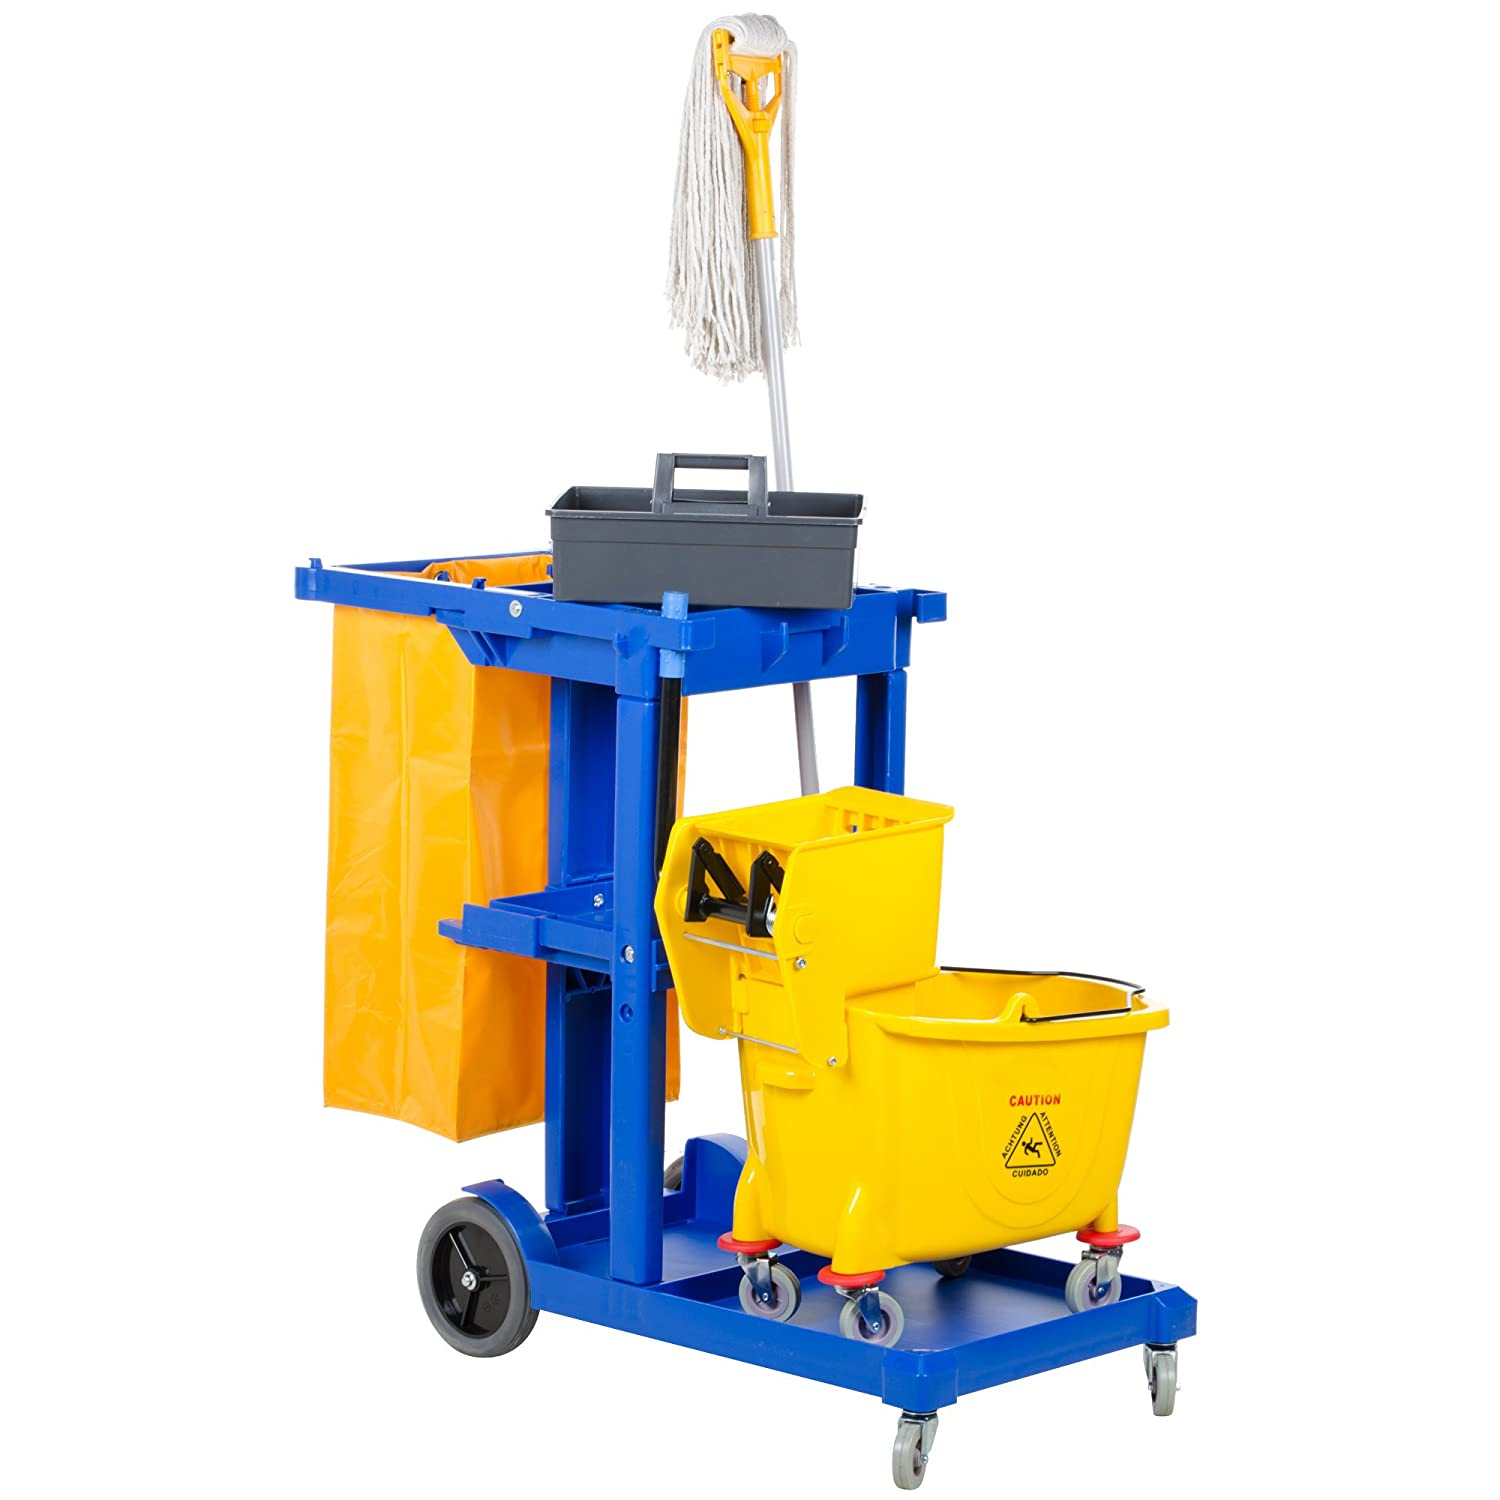 Mop Bucket Wringer Cleaning Trolley Cleaning Mop Holder Hotel Cleaning 24 L